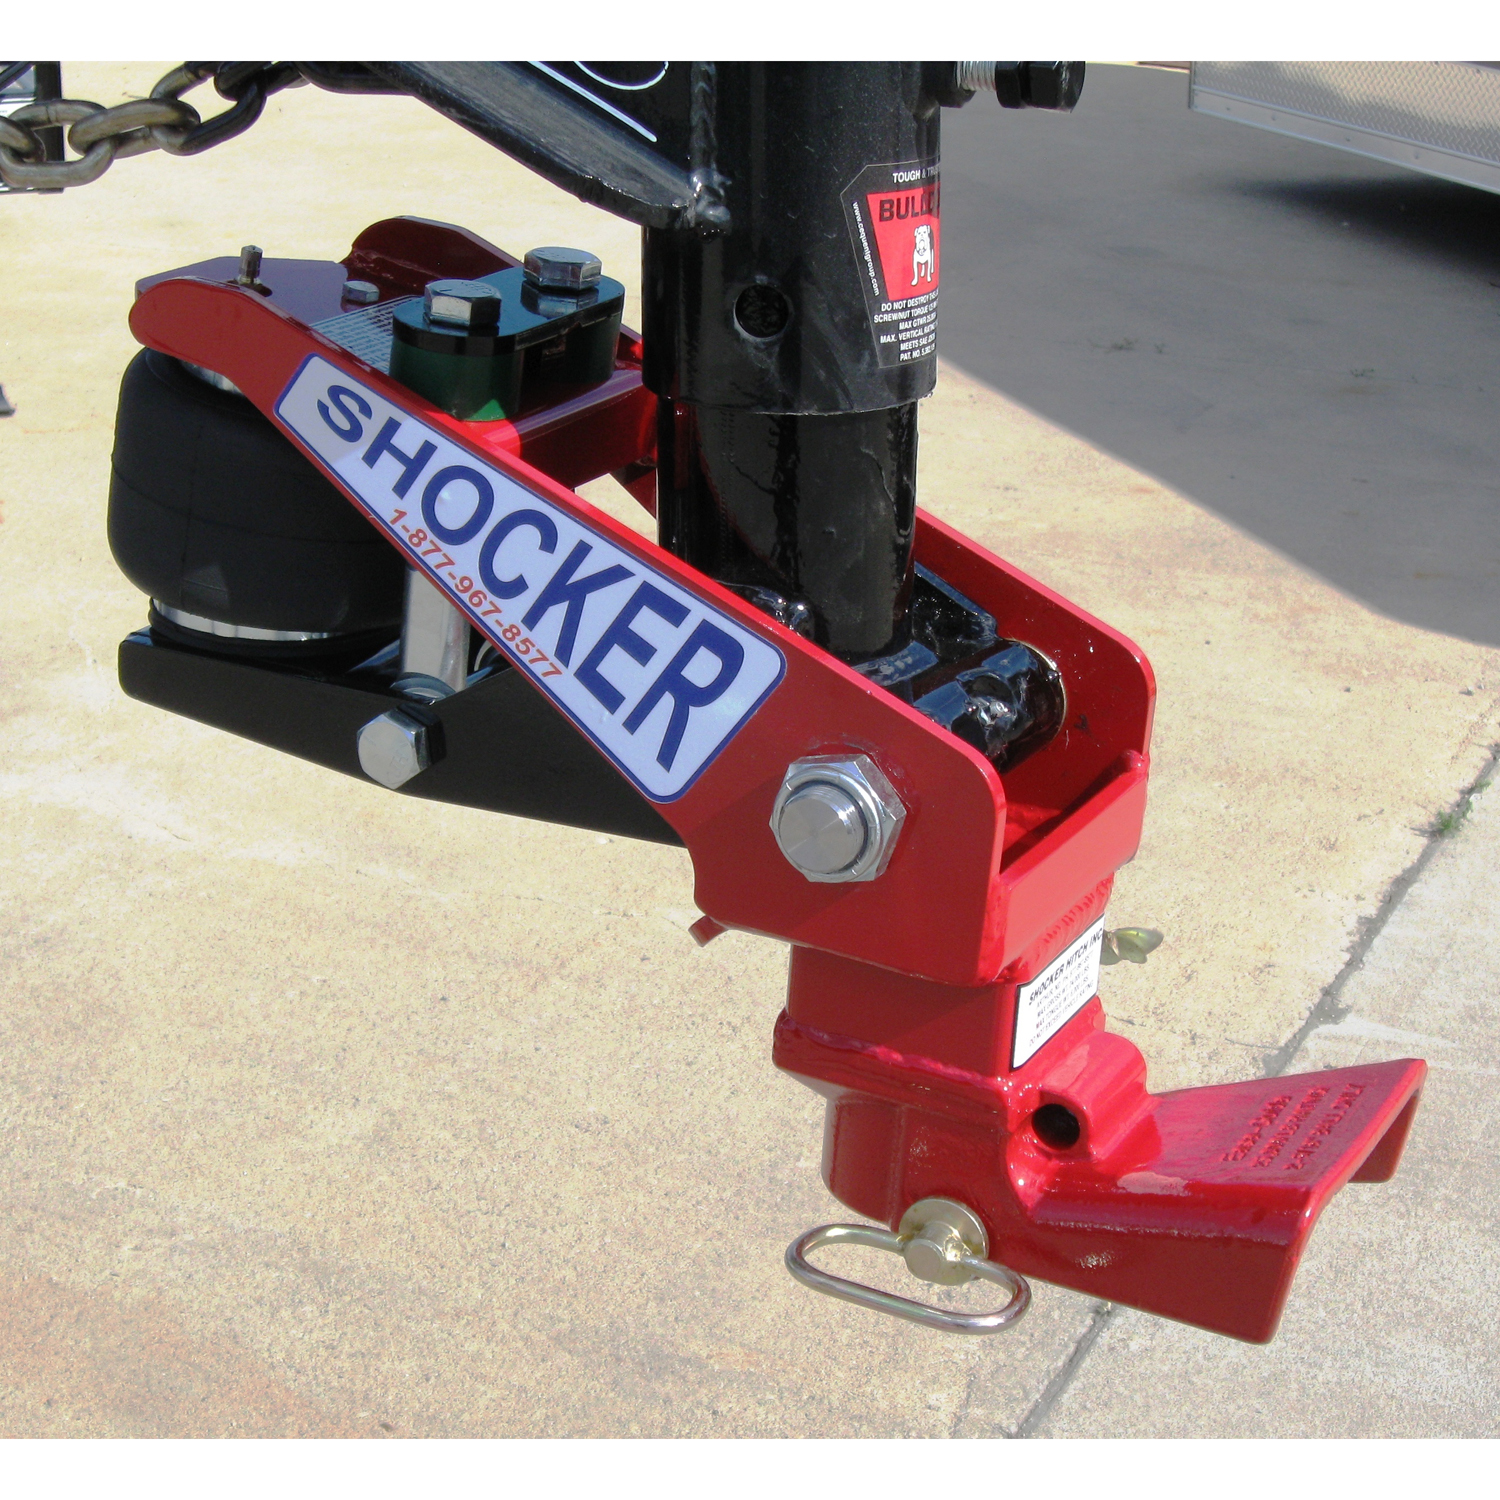 Gooseneck Hitch 4 inch SQUARE Tube with EASE GUIDE SHHSH-910EG | Tool Discounter